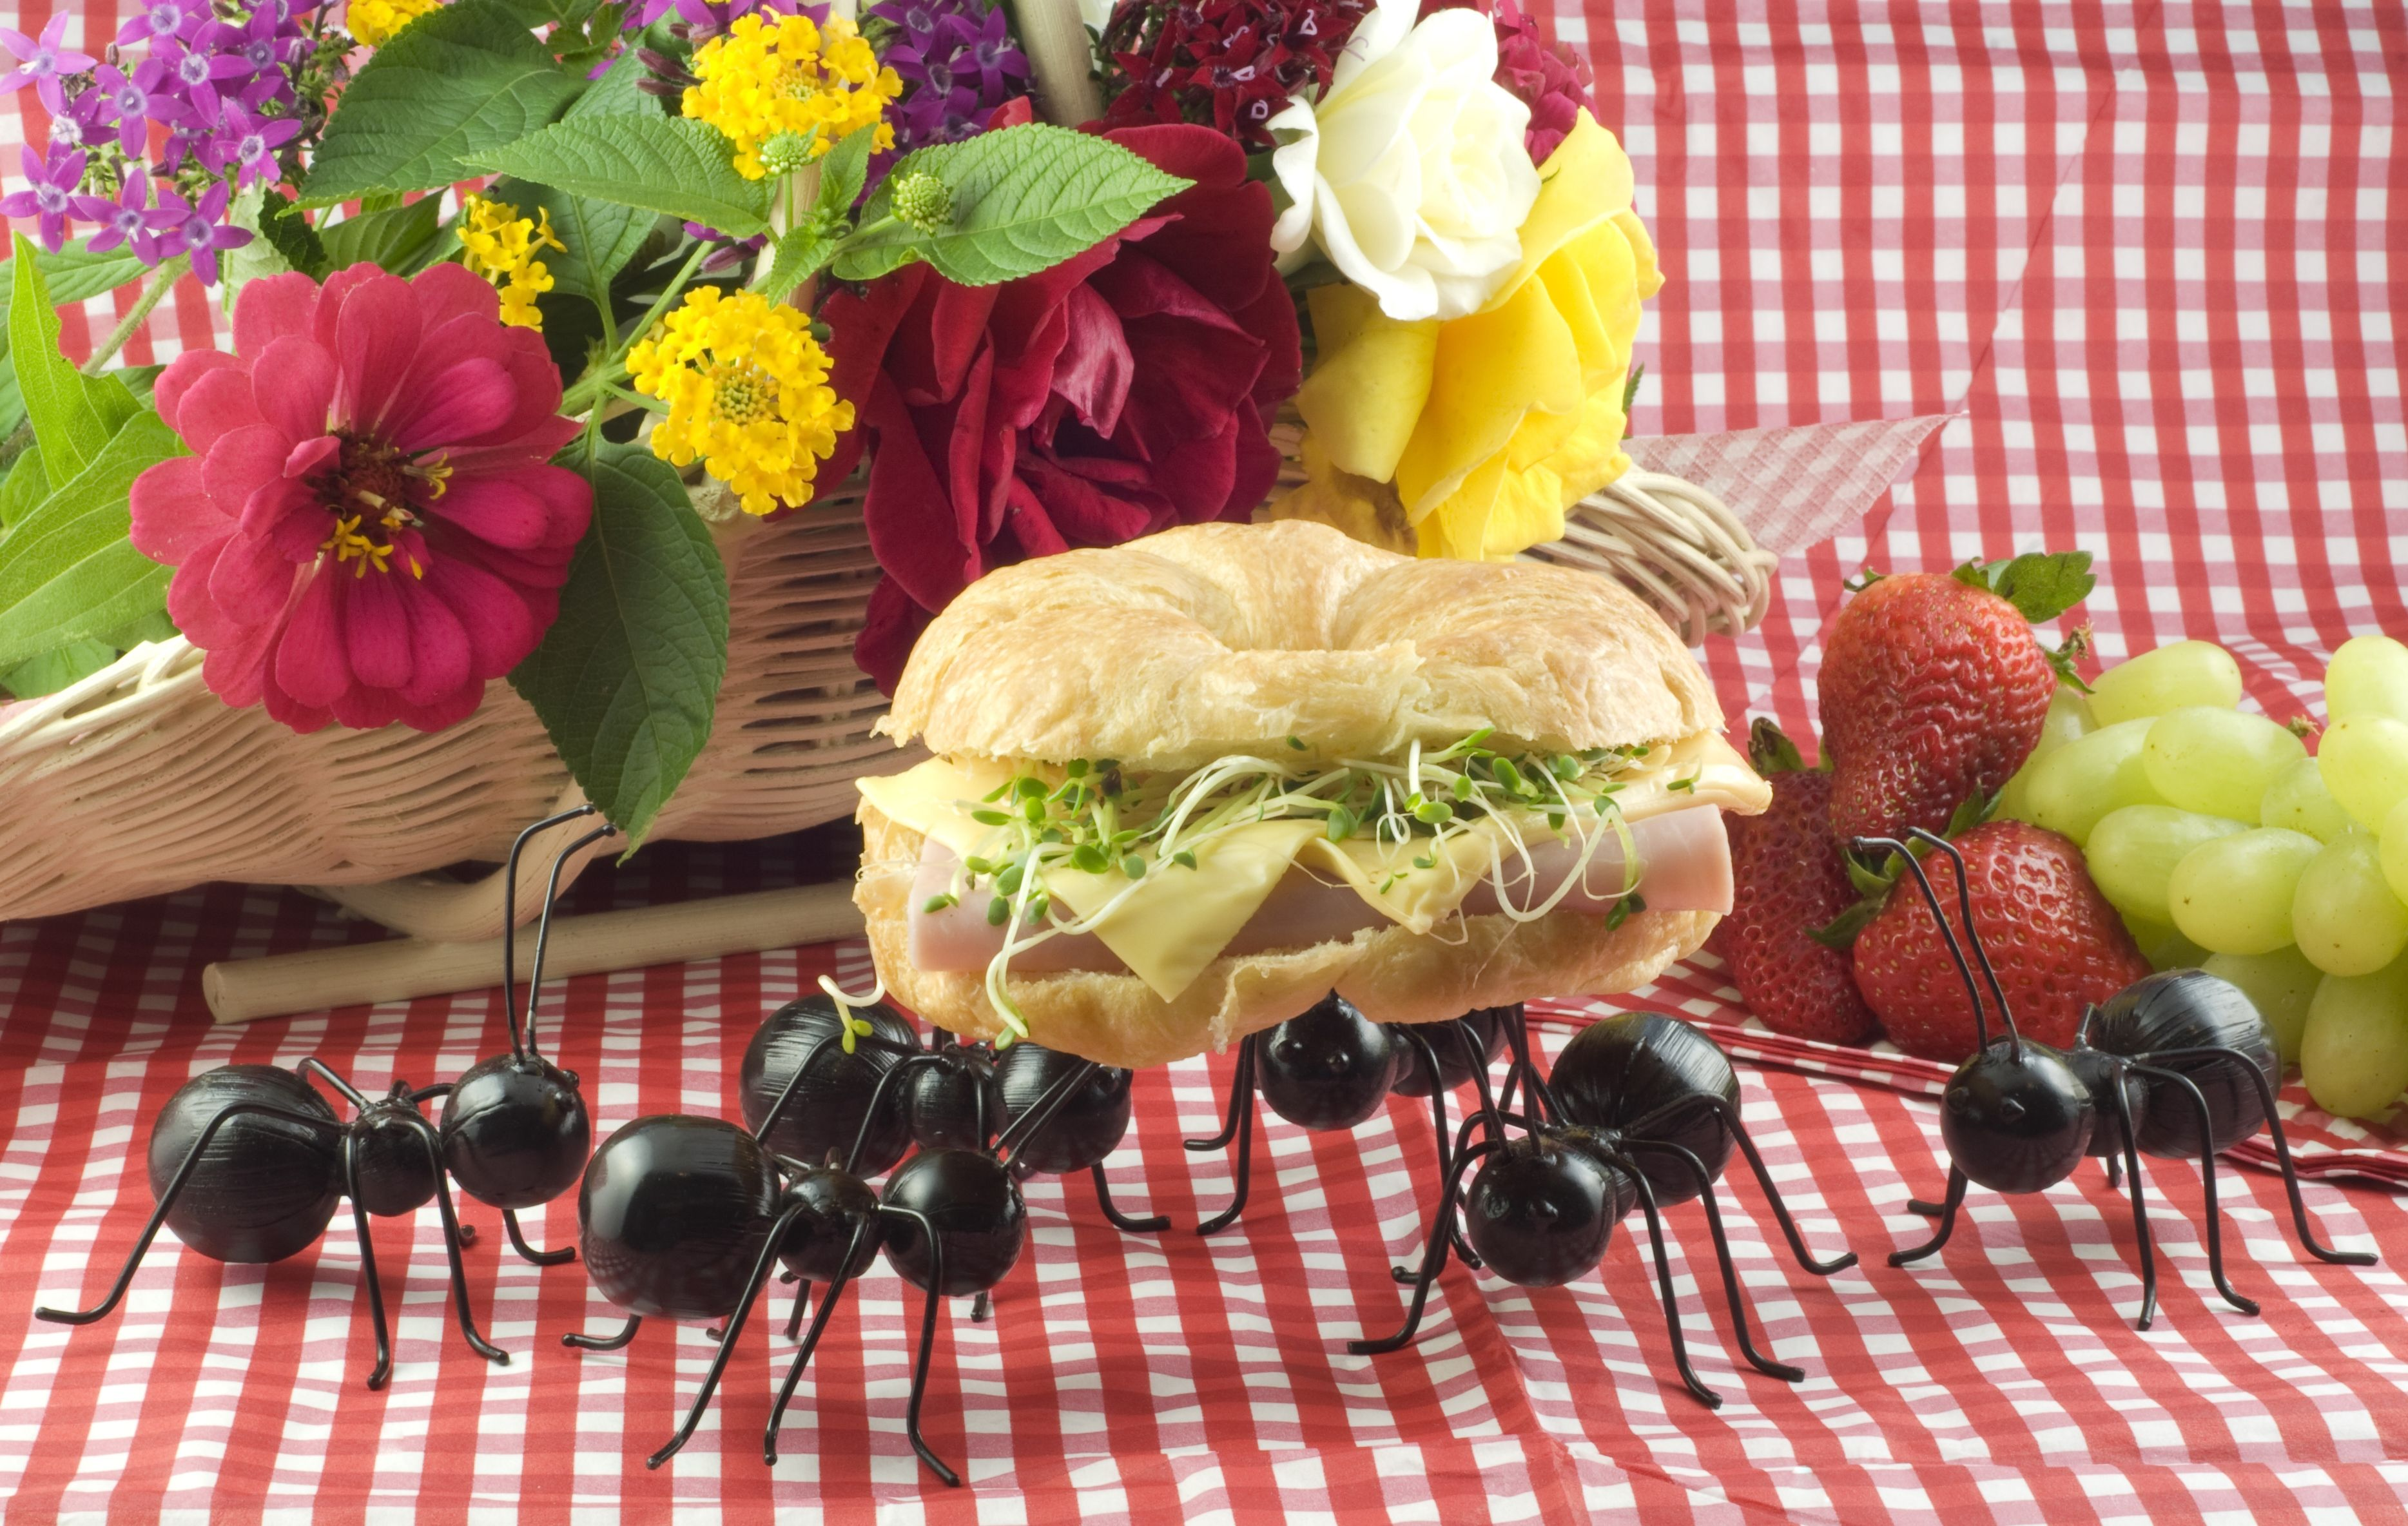 A group of ants invading a picnic and carrying a sandwich, concept, vertical with copy space